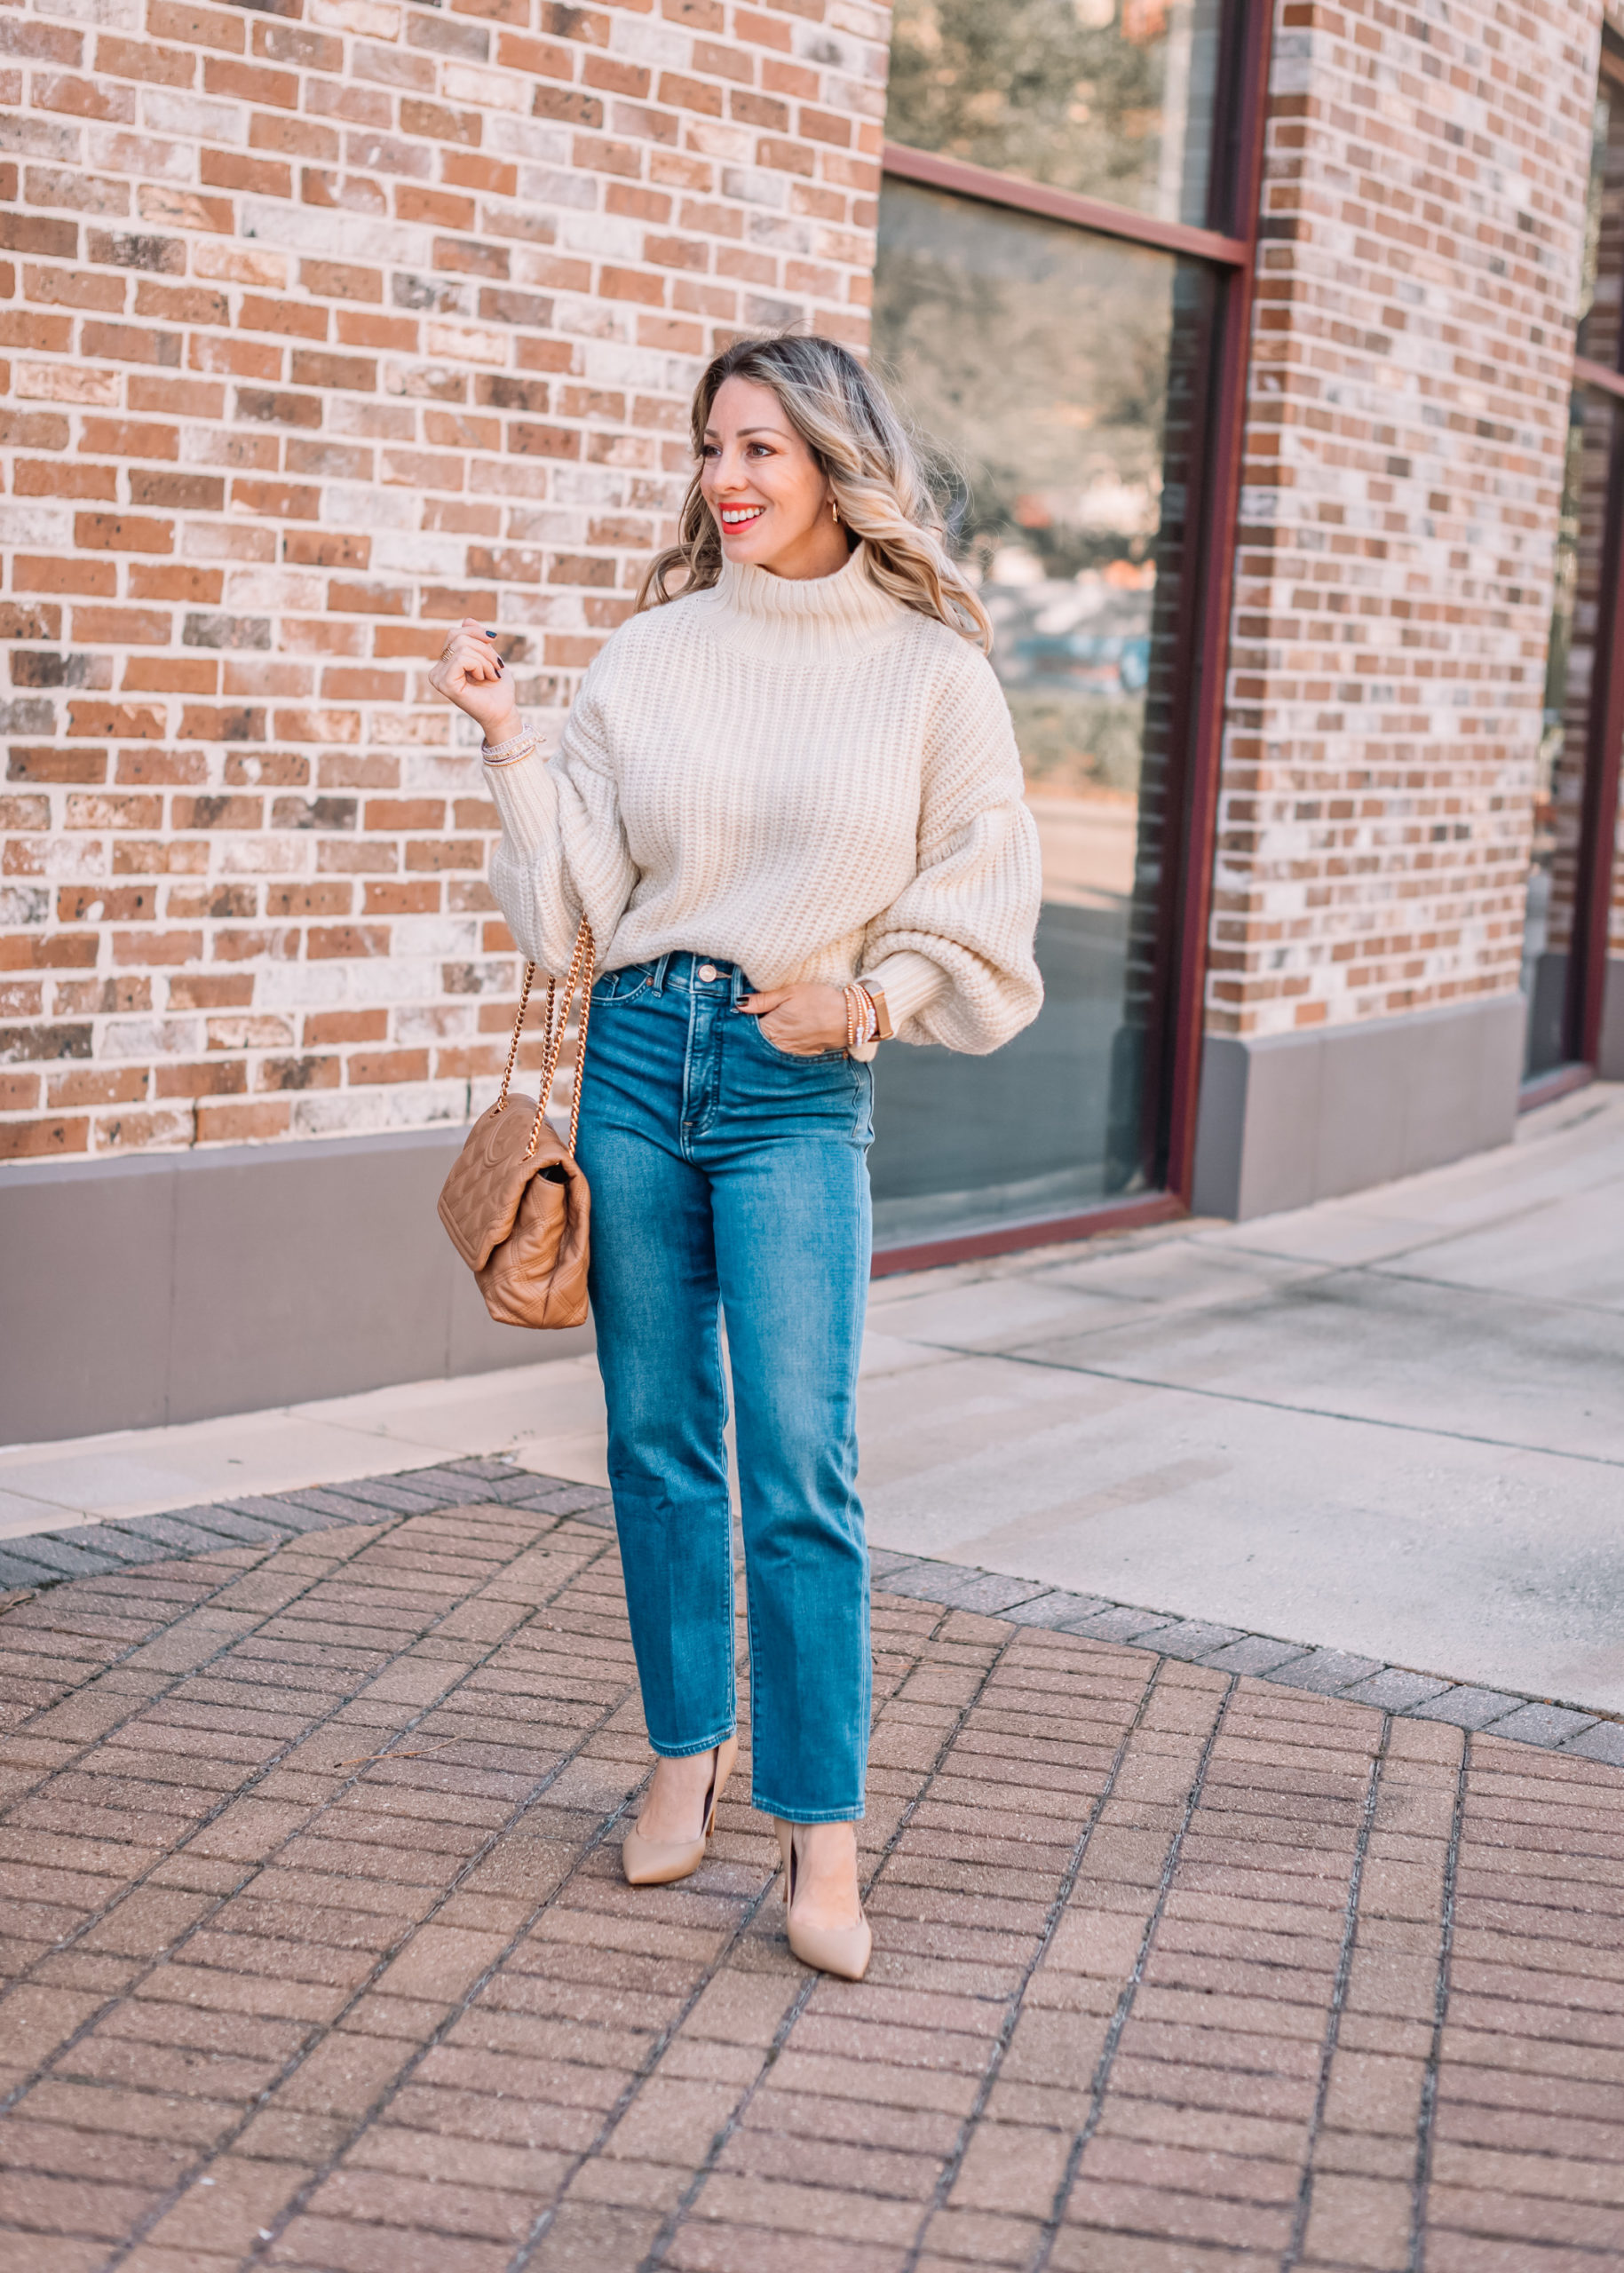 Express Fashion, Balloon Sleeve Sweater, Jeans, Nude Heels